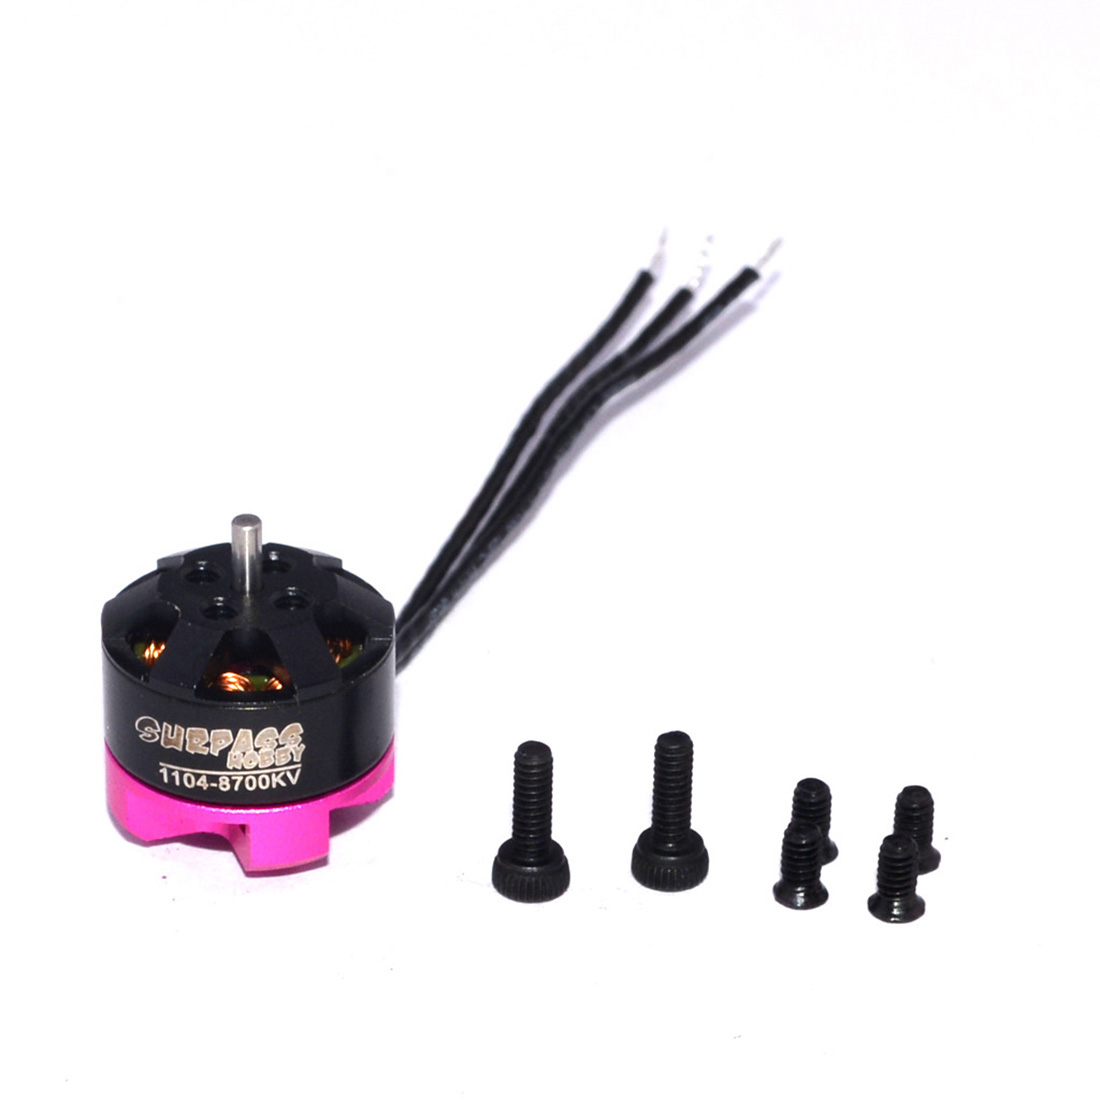 SURPASS HOBBY <font><b>1104</b></font> 8700kv 7000KV 2S Brushless <font><b>Motor</b></font> 12 Pole for RC 80 90 100 110 120 130 indoor FPV Racing Drone Quadcopter image